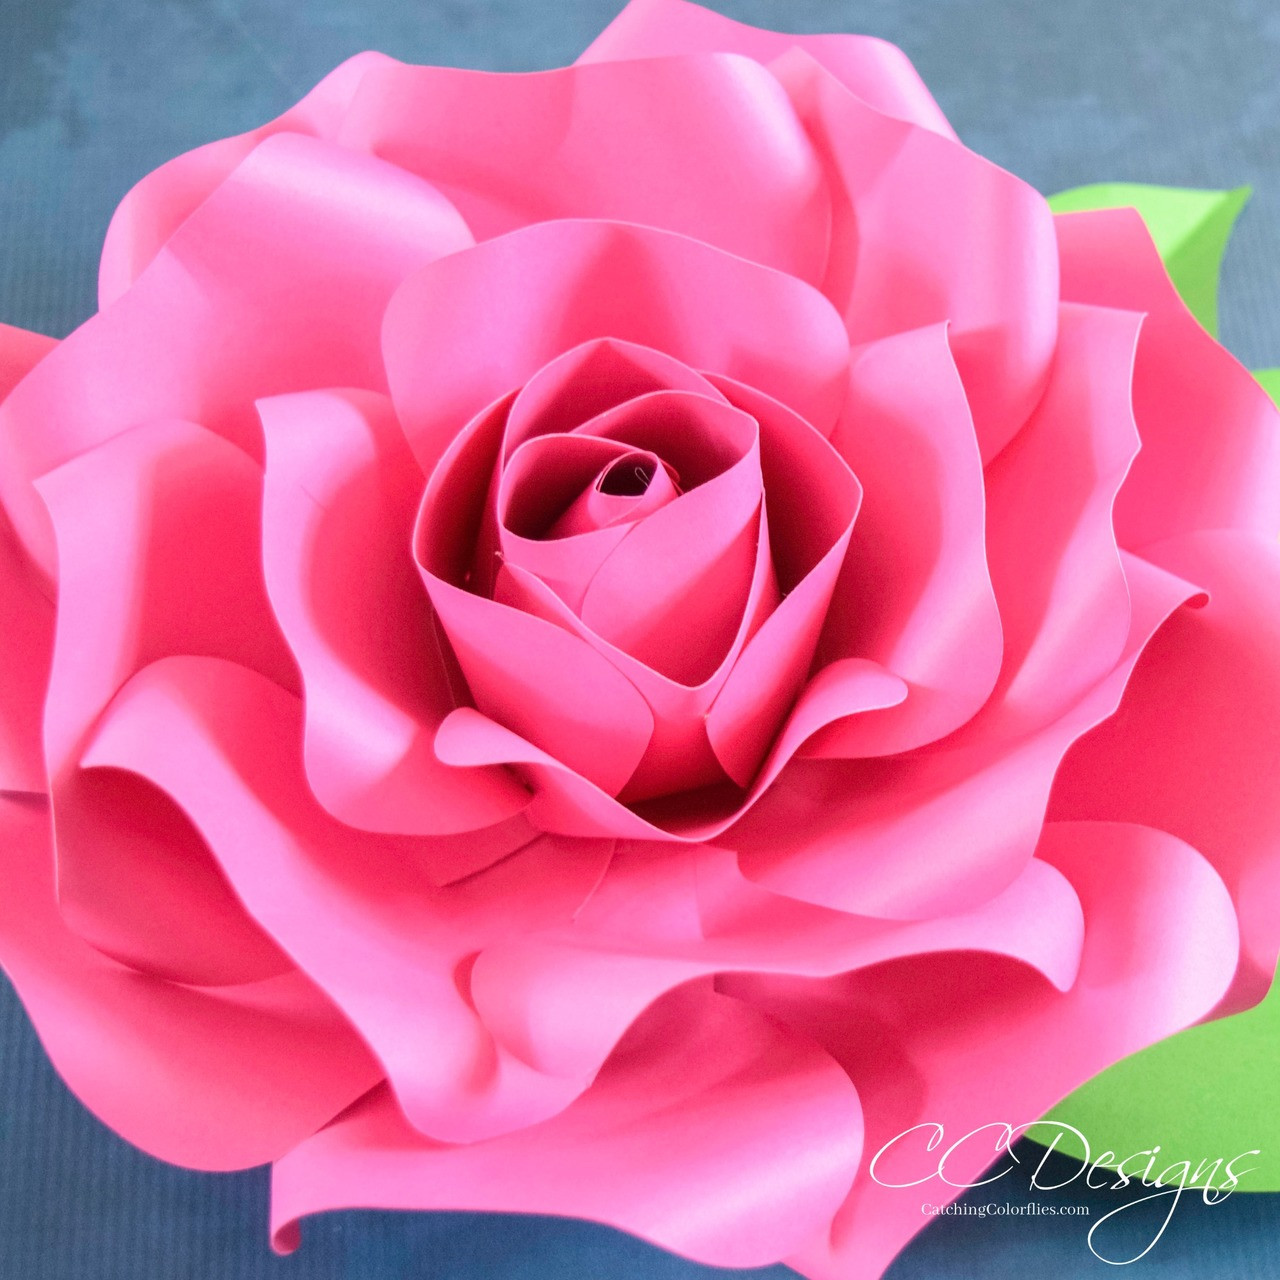 Alora Garden Giant Paper Rose Template Tutorial Catching Colorflies